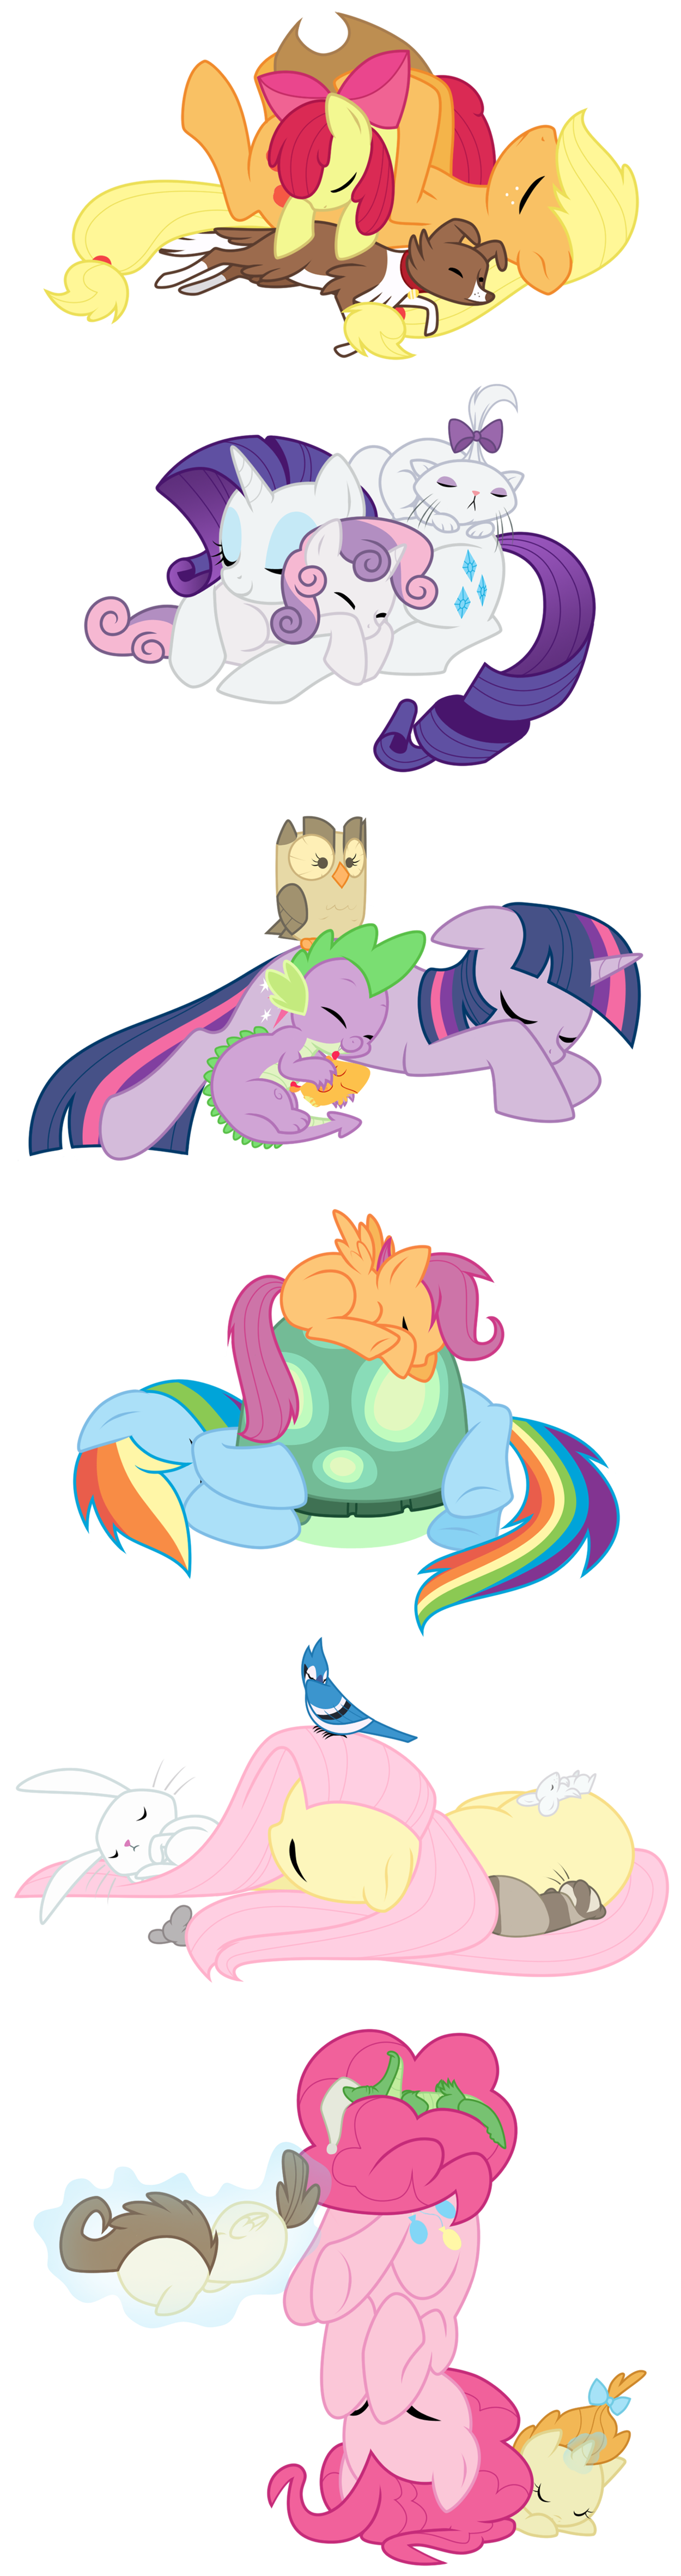 Tired clipart nap. Image my little pony